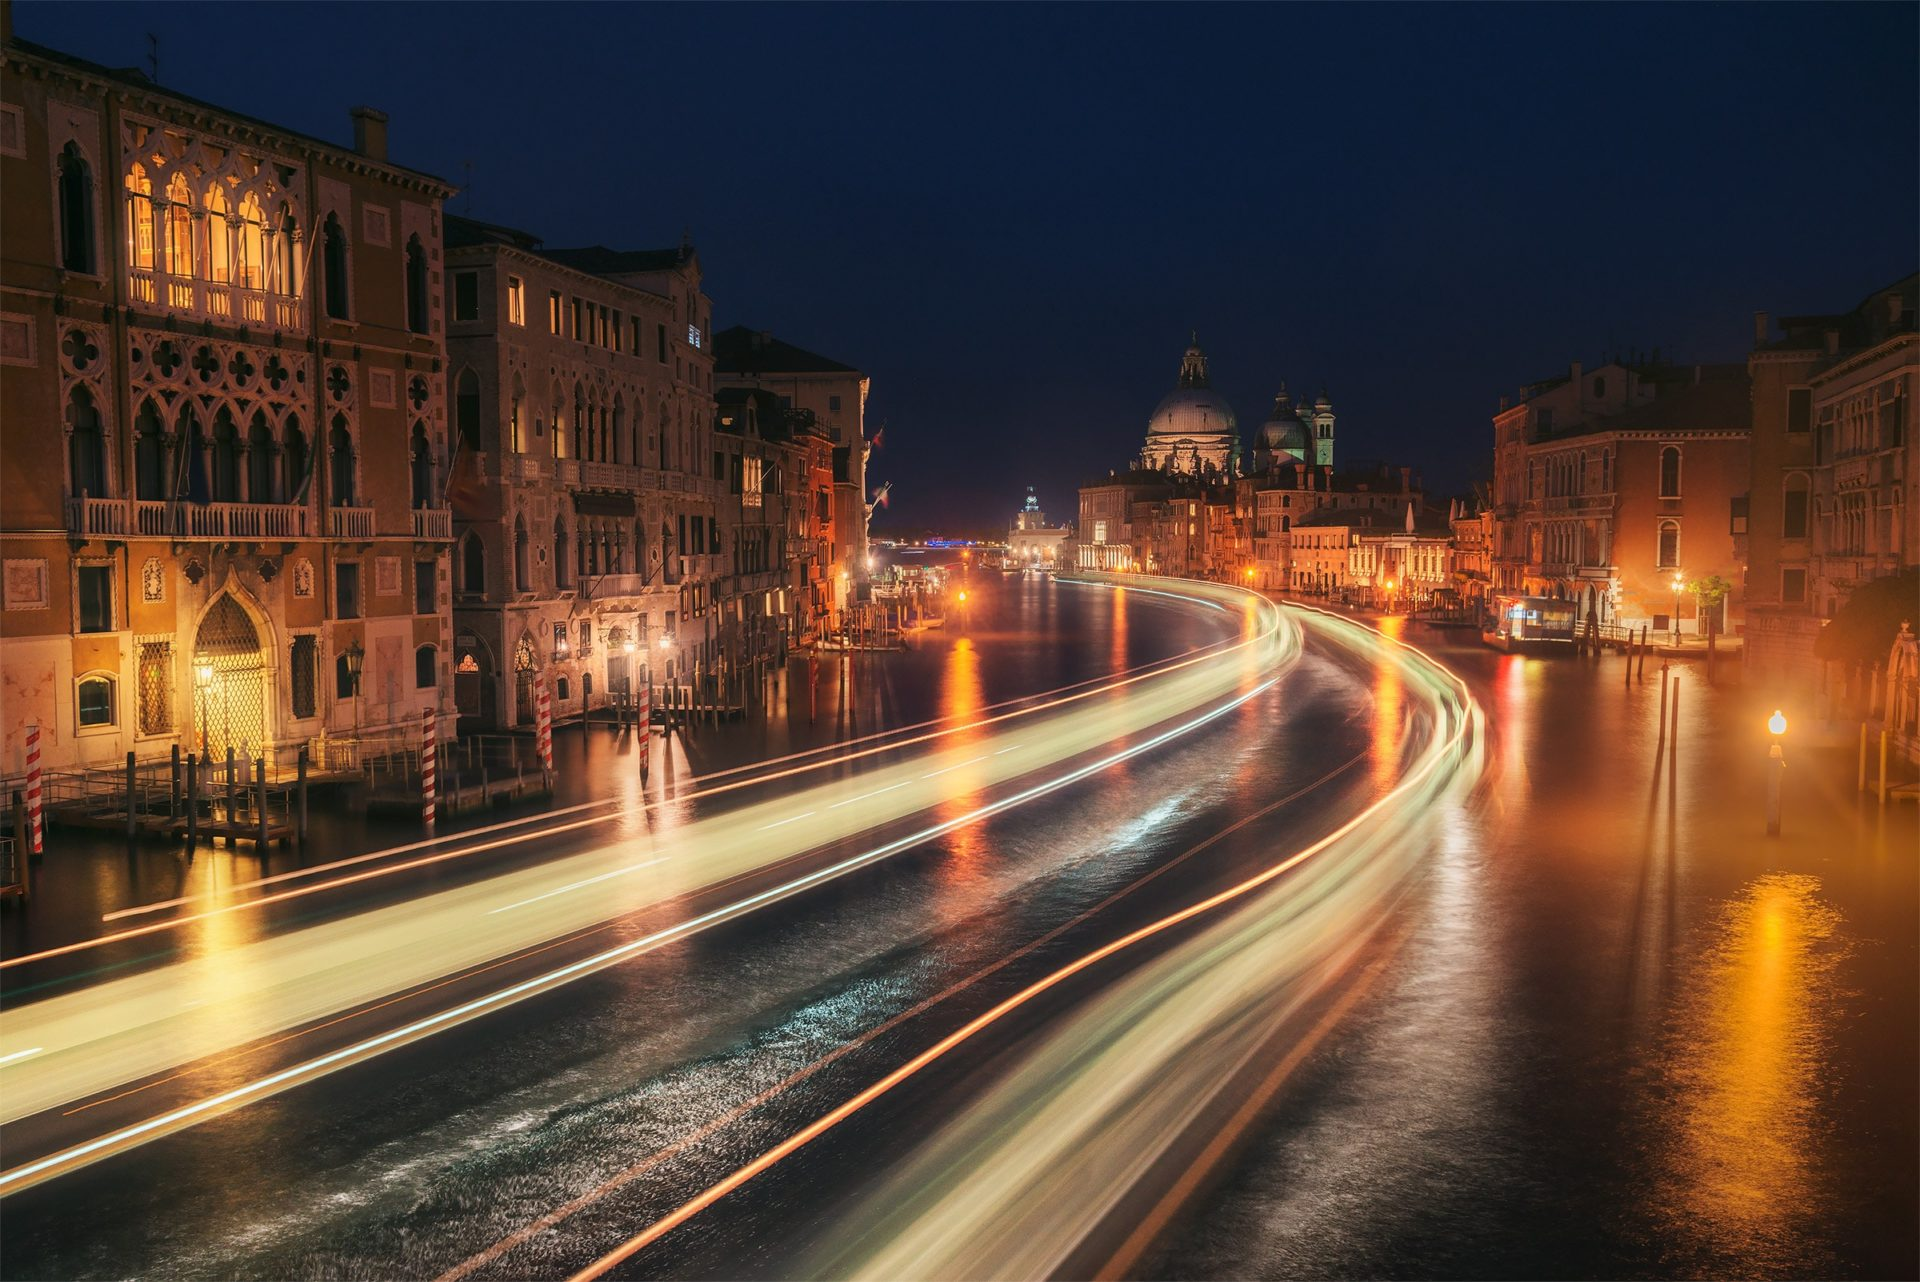 long exposure at night in Venice photo tour